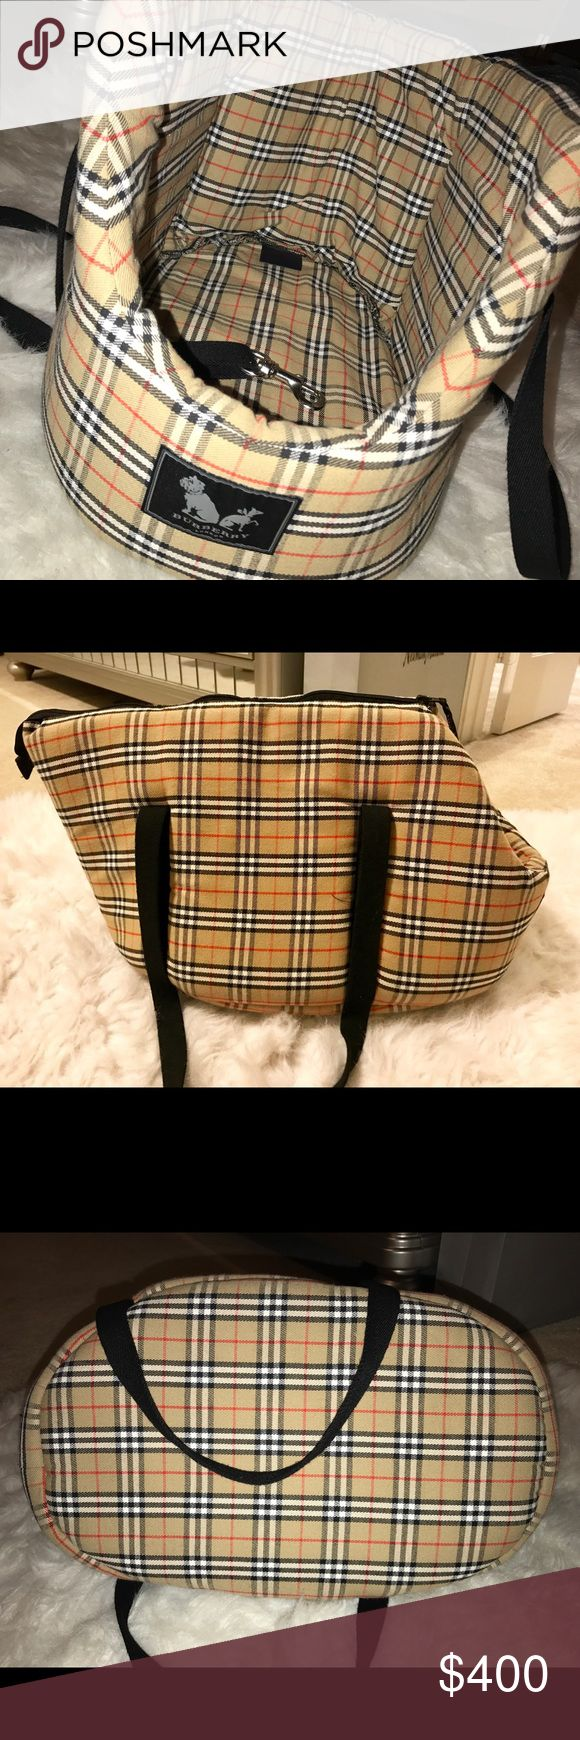 Burberry Pet Carrier We bought this for our yorkie because we thought we'd need to use it at some point but he's never been in it even once just to try it out! Even though he never went in it, it looks like he would fit perfectly. So I would have to GUESS it could hold a pet up to 10lbs but I cannot say for sure.  Therefore, it's really like new as there are no signs of wear. So if you have a pet who might appreciate a carrier like this one, it really is super cute and probably pretty comfy…